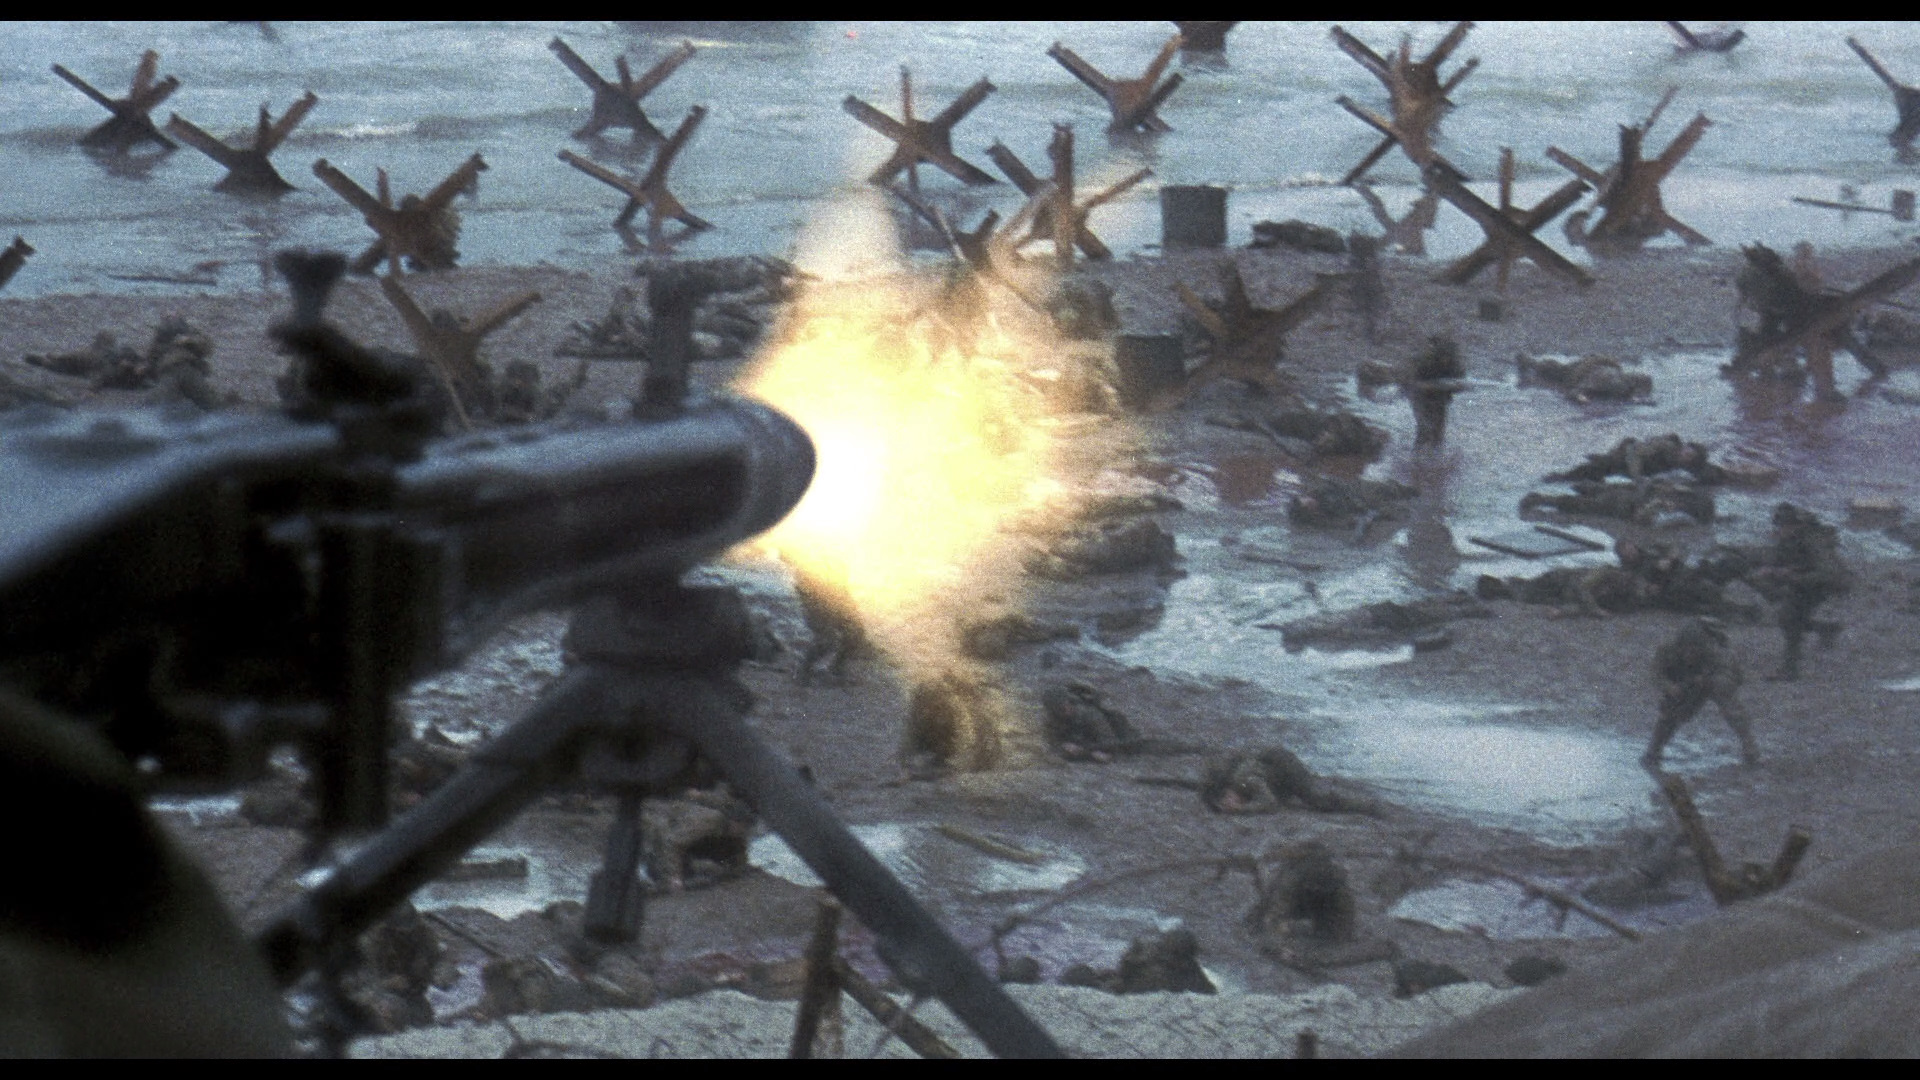 Envision the Omaha Beach scene from  Saving Private Ryan , but replace the Nazis with American Marines and replace the American Soldiers with dinosaurs, and you have a real fucking end to a movie worthy of a new Oscar category - Gratuitous Use of Fan Fiction Orgy Material.